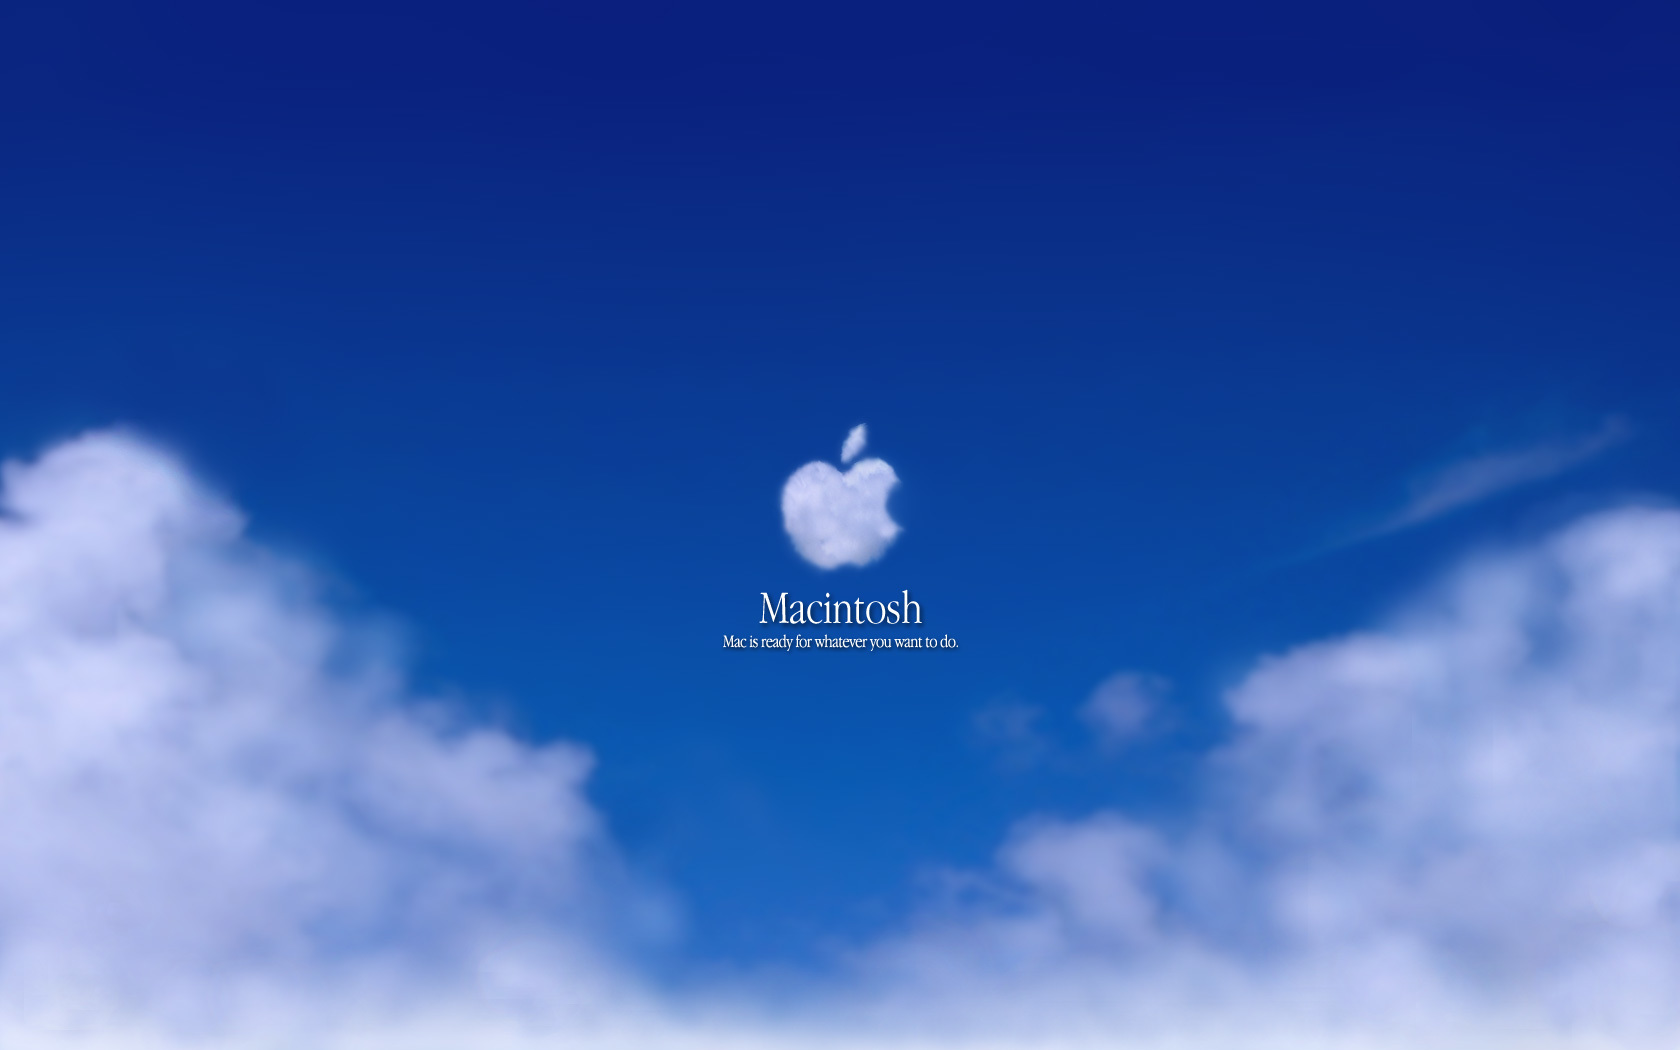 apple Inc. logos macintosh HD Wallpaper